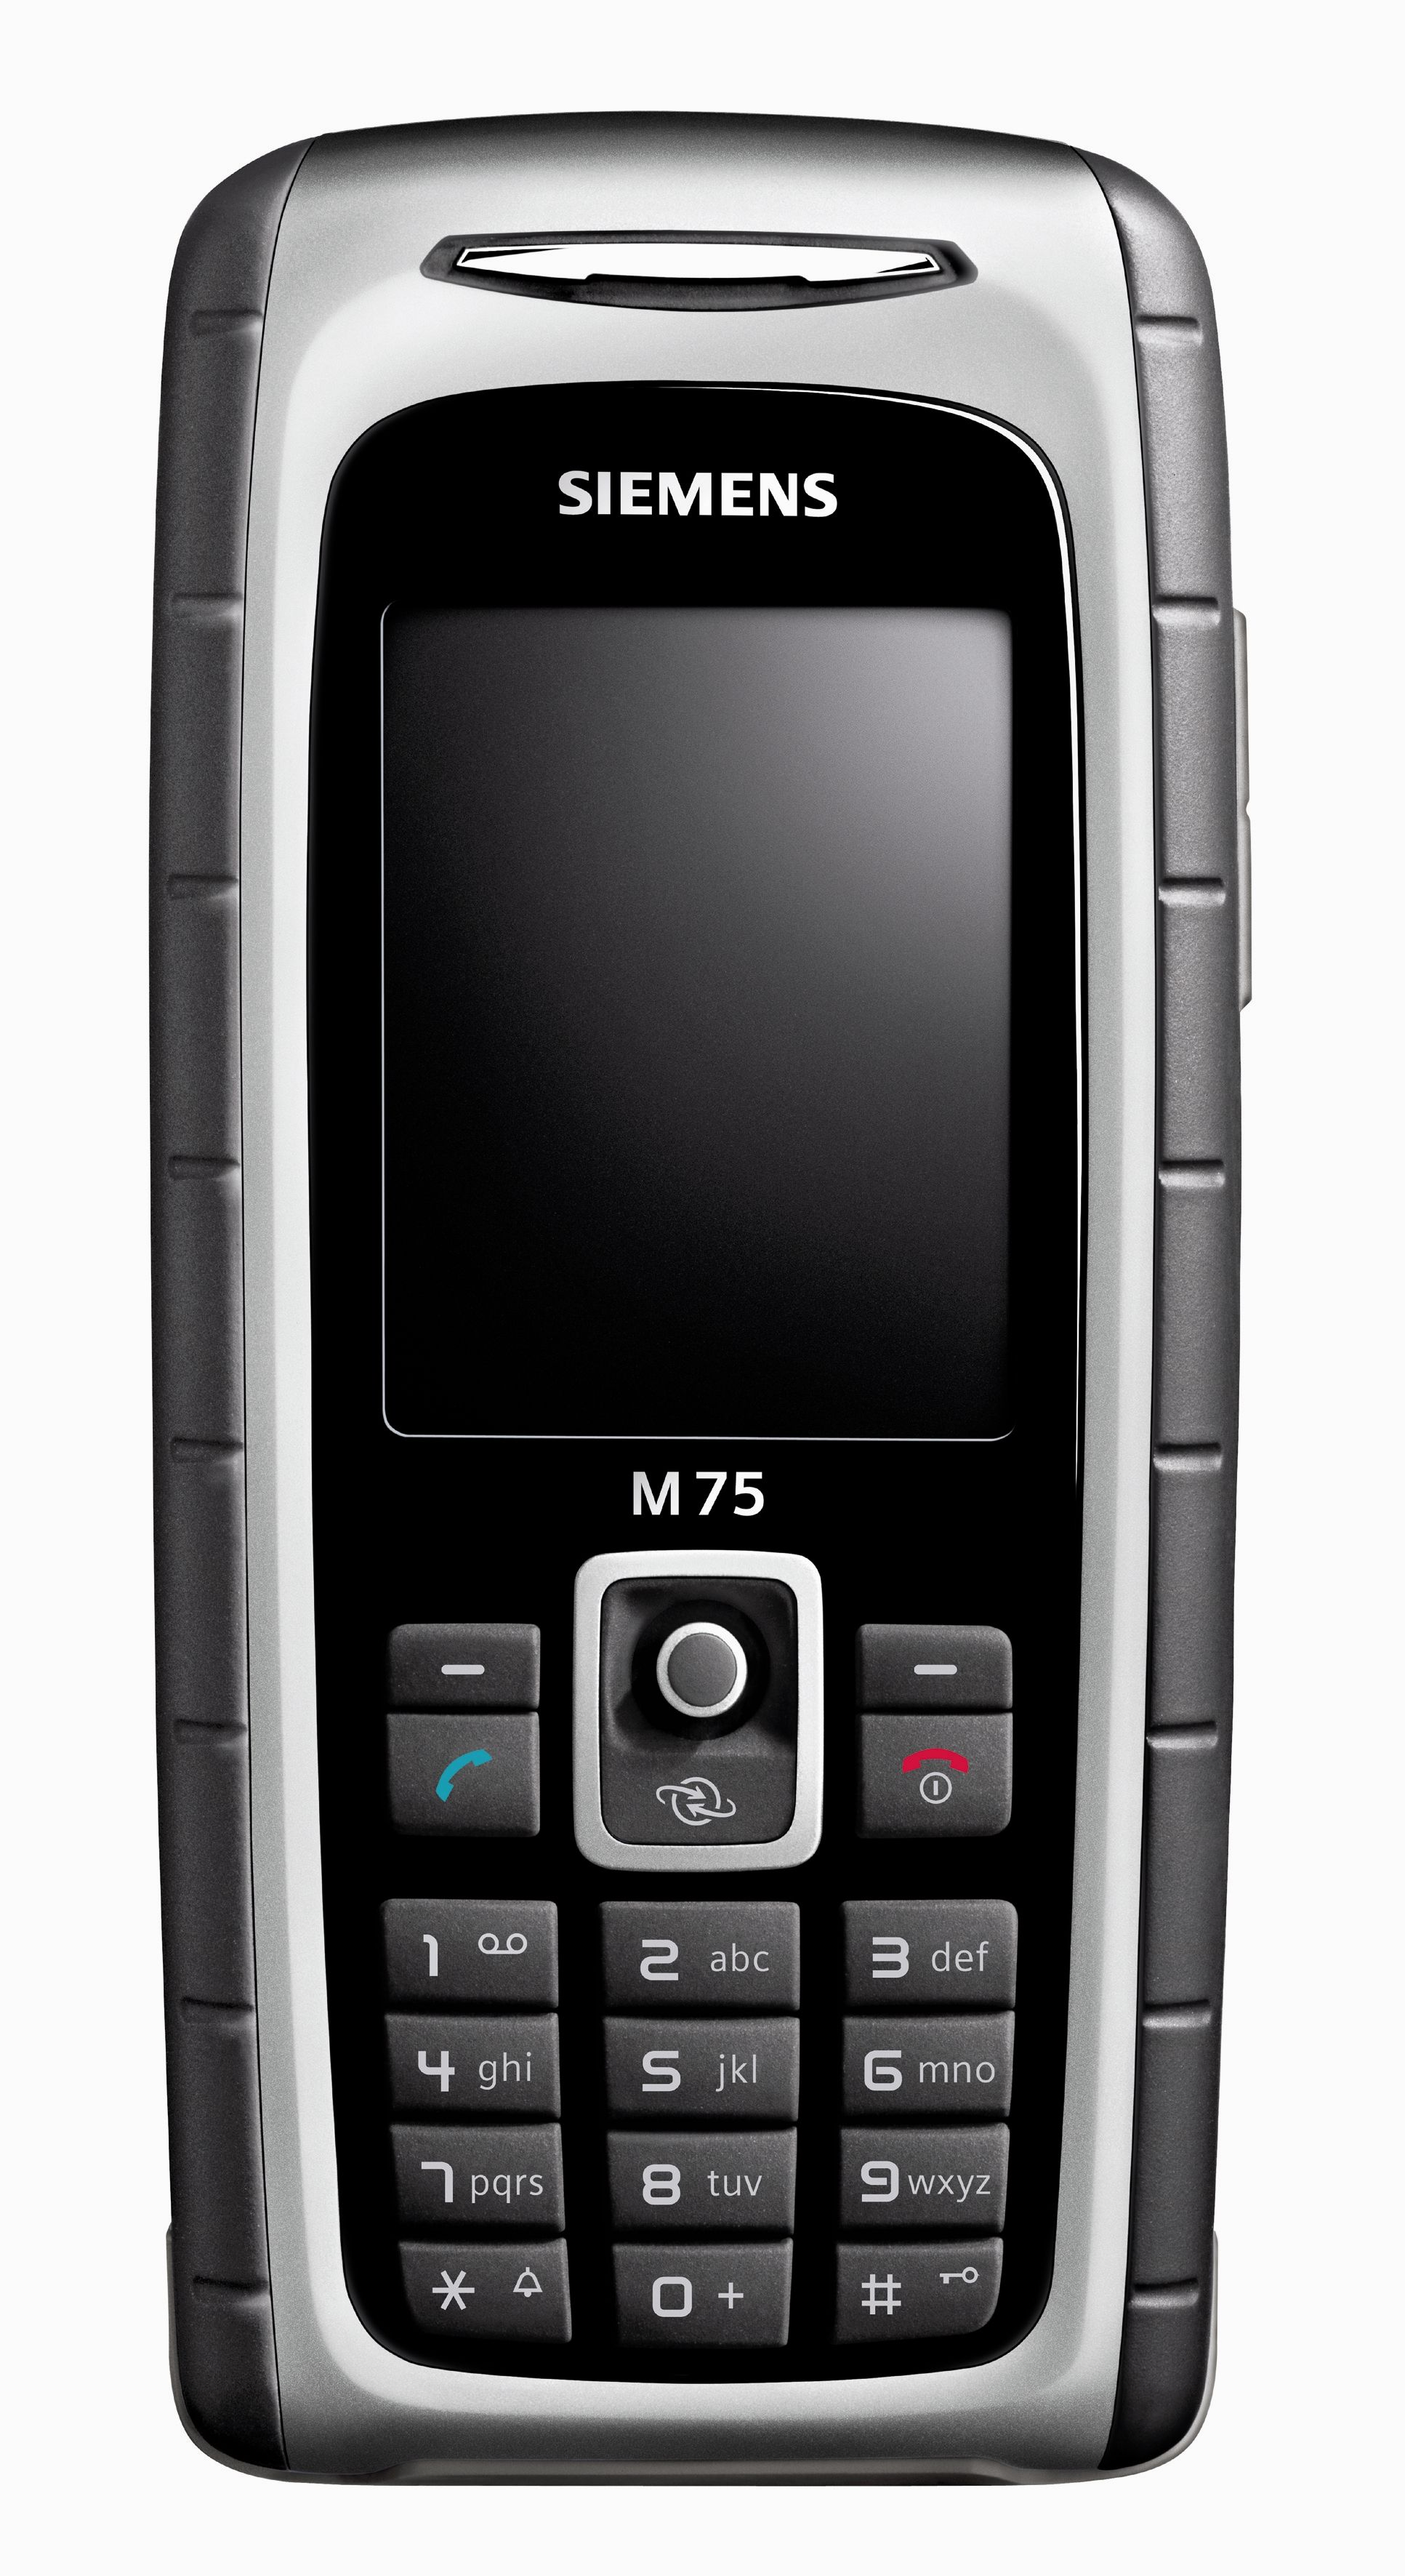 Siemens M75 Device Specifications Handset Detection